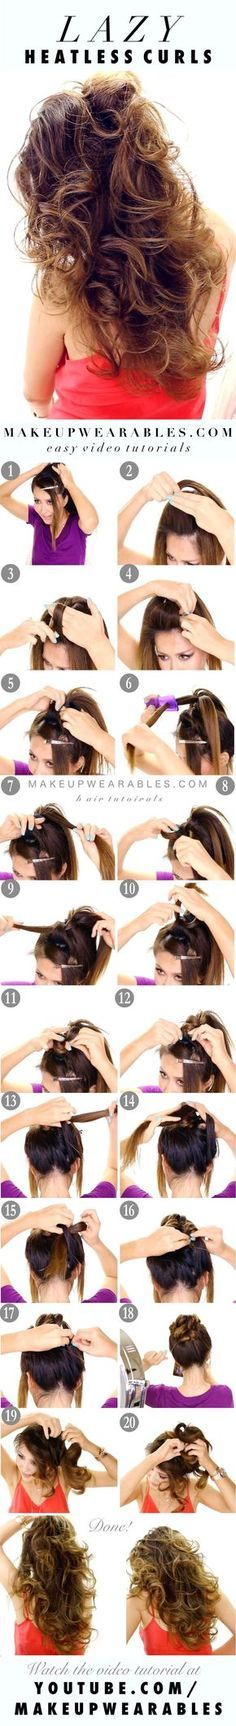 Easy lazy heatless curls overnight - no heat waves #hairstyles